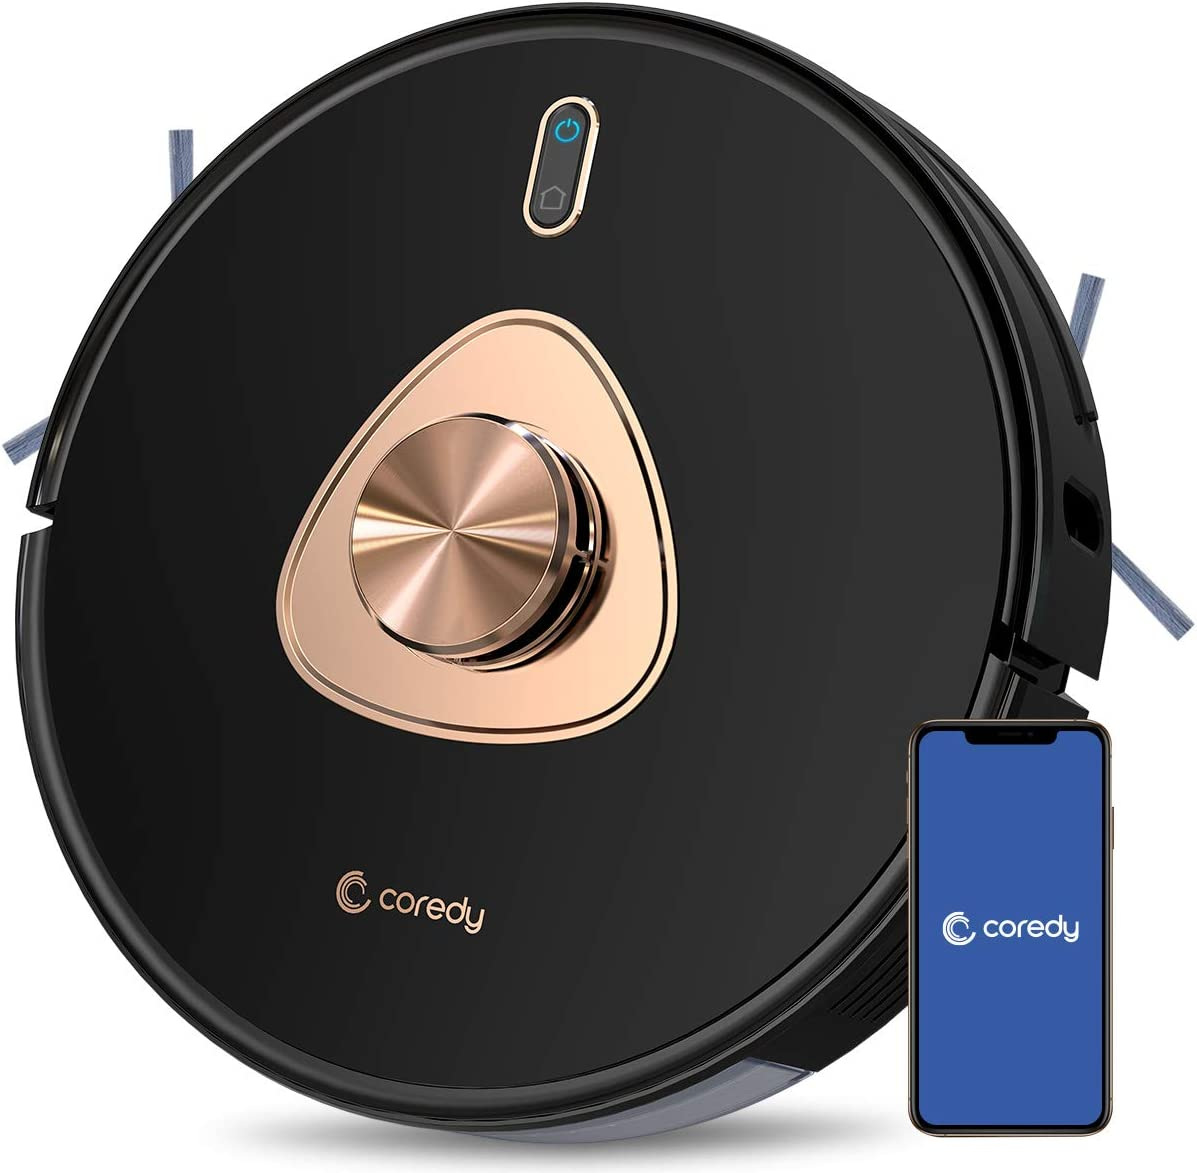 Amazon's Deal of the Day: Coredy Robot Vacuums! Up to 42% off!